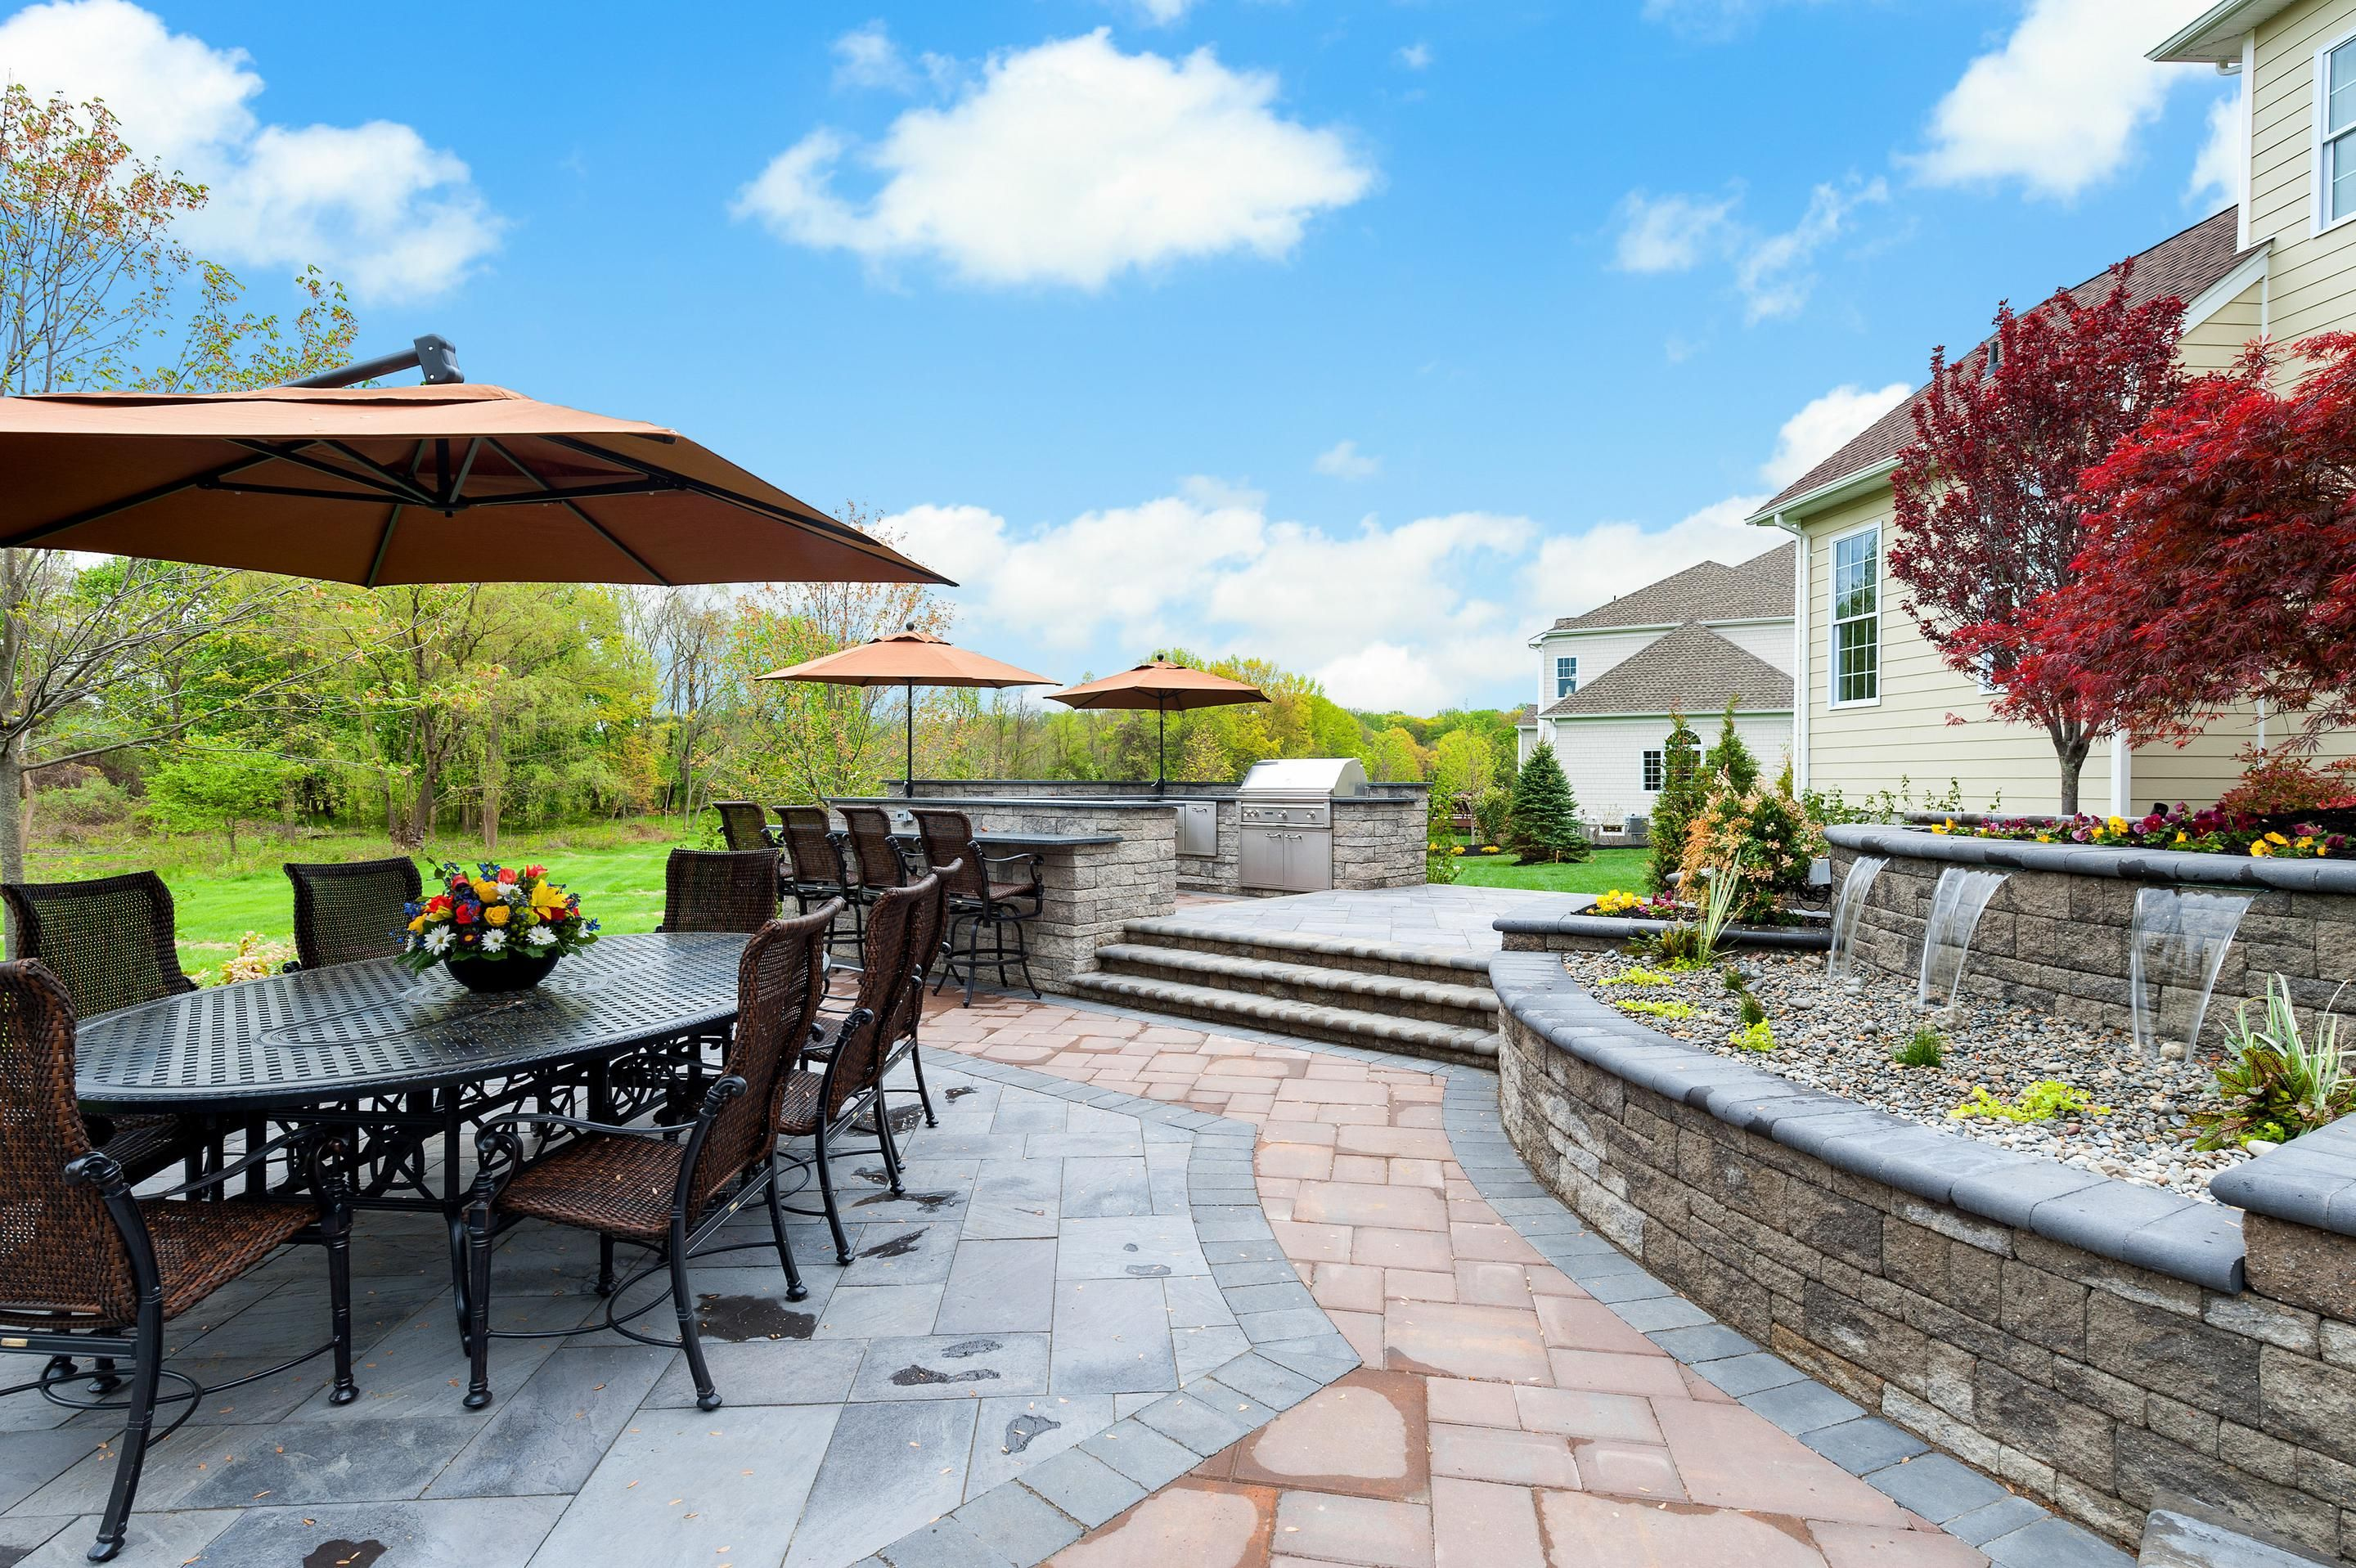 Estates at Bamm Hollow in New Jersey offers designs that allow for easy  outdoor living. Estates at Bamm Hollow in New Jersey offers designs that allow for